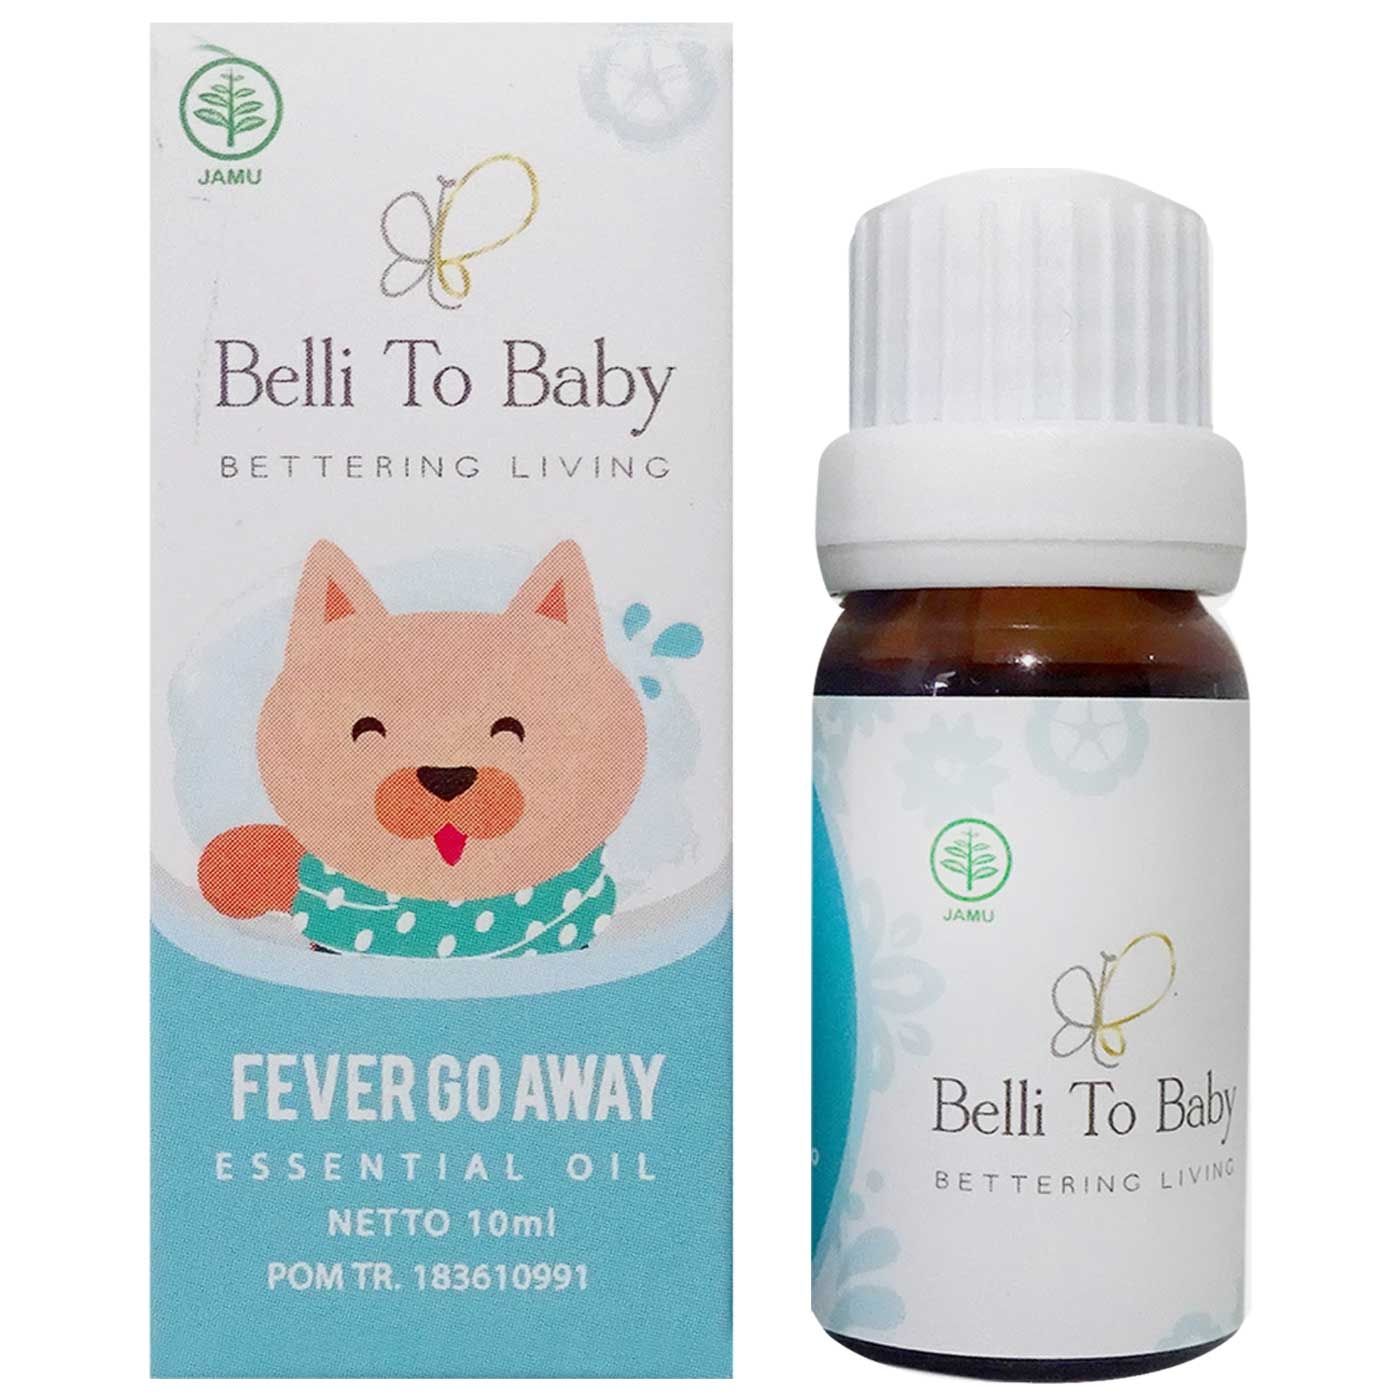 Belli To Baby Essential Oil Fever Go Away 10ml